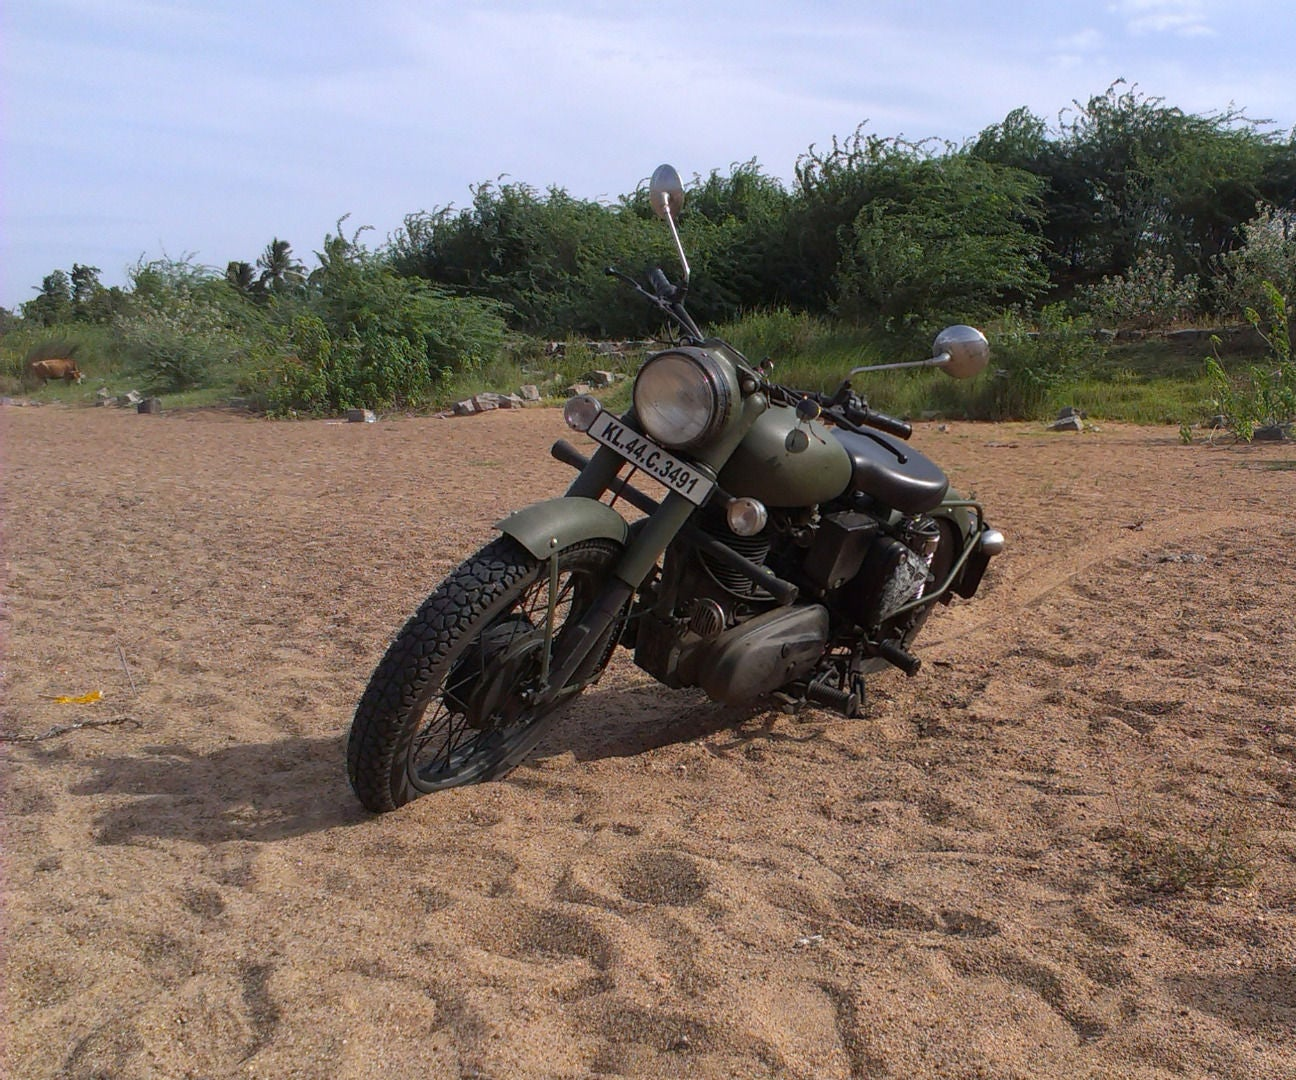 Increase Power And Mileage 7 Steps With Pictures Wiring Diagram Also Royal Enfield Bullet 500 Further